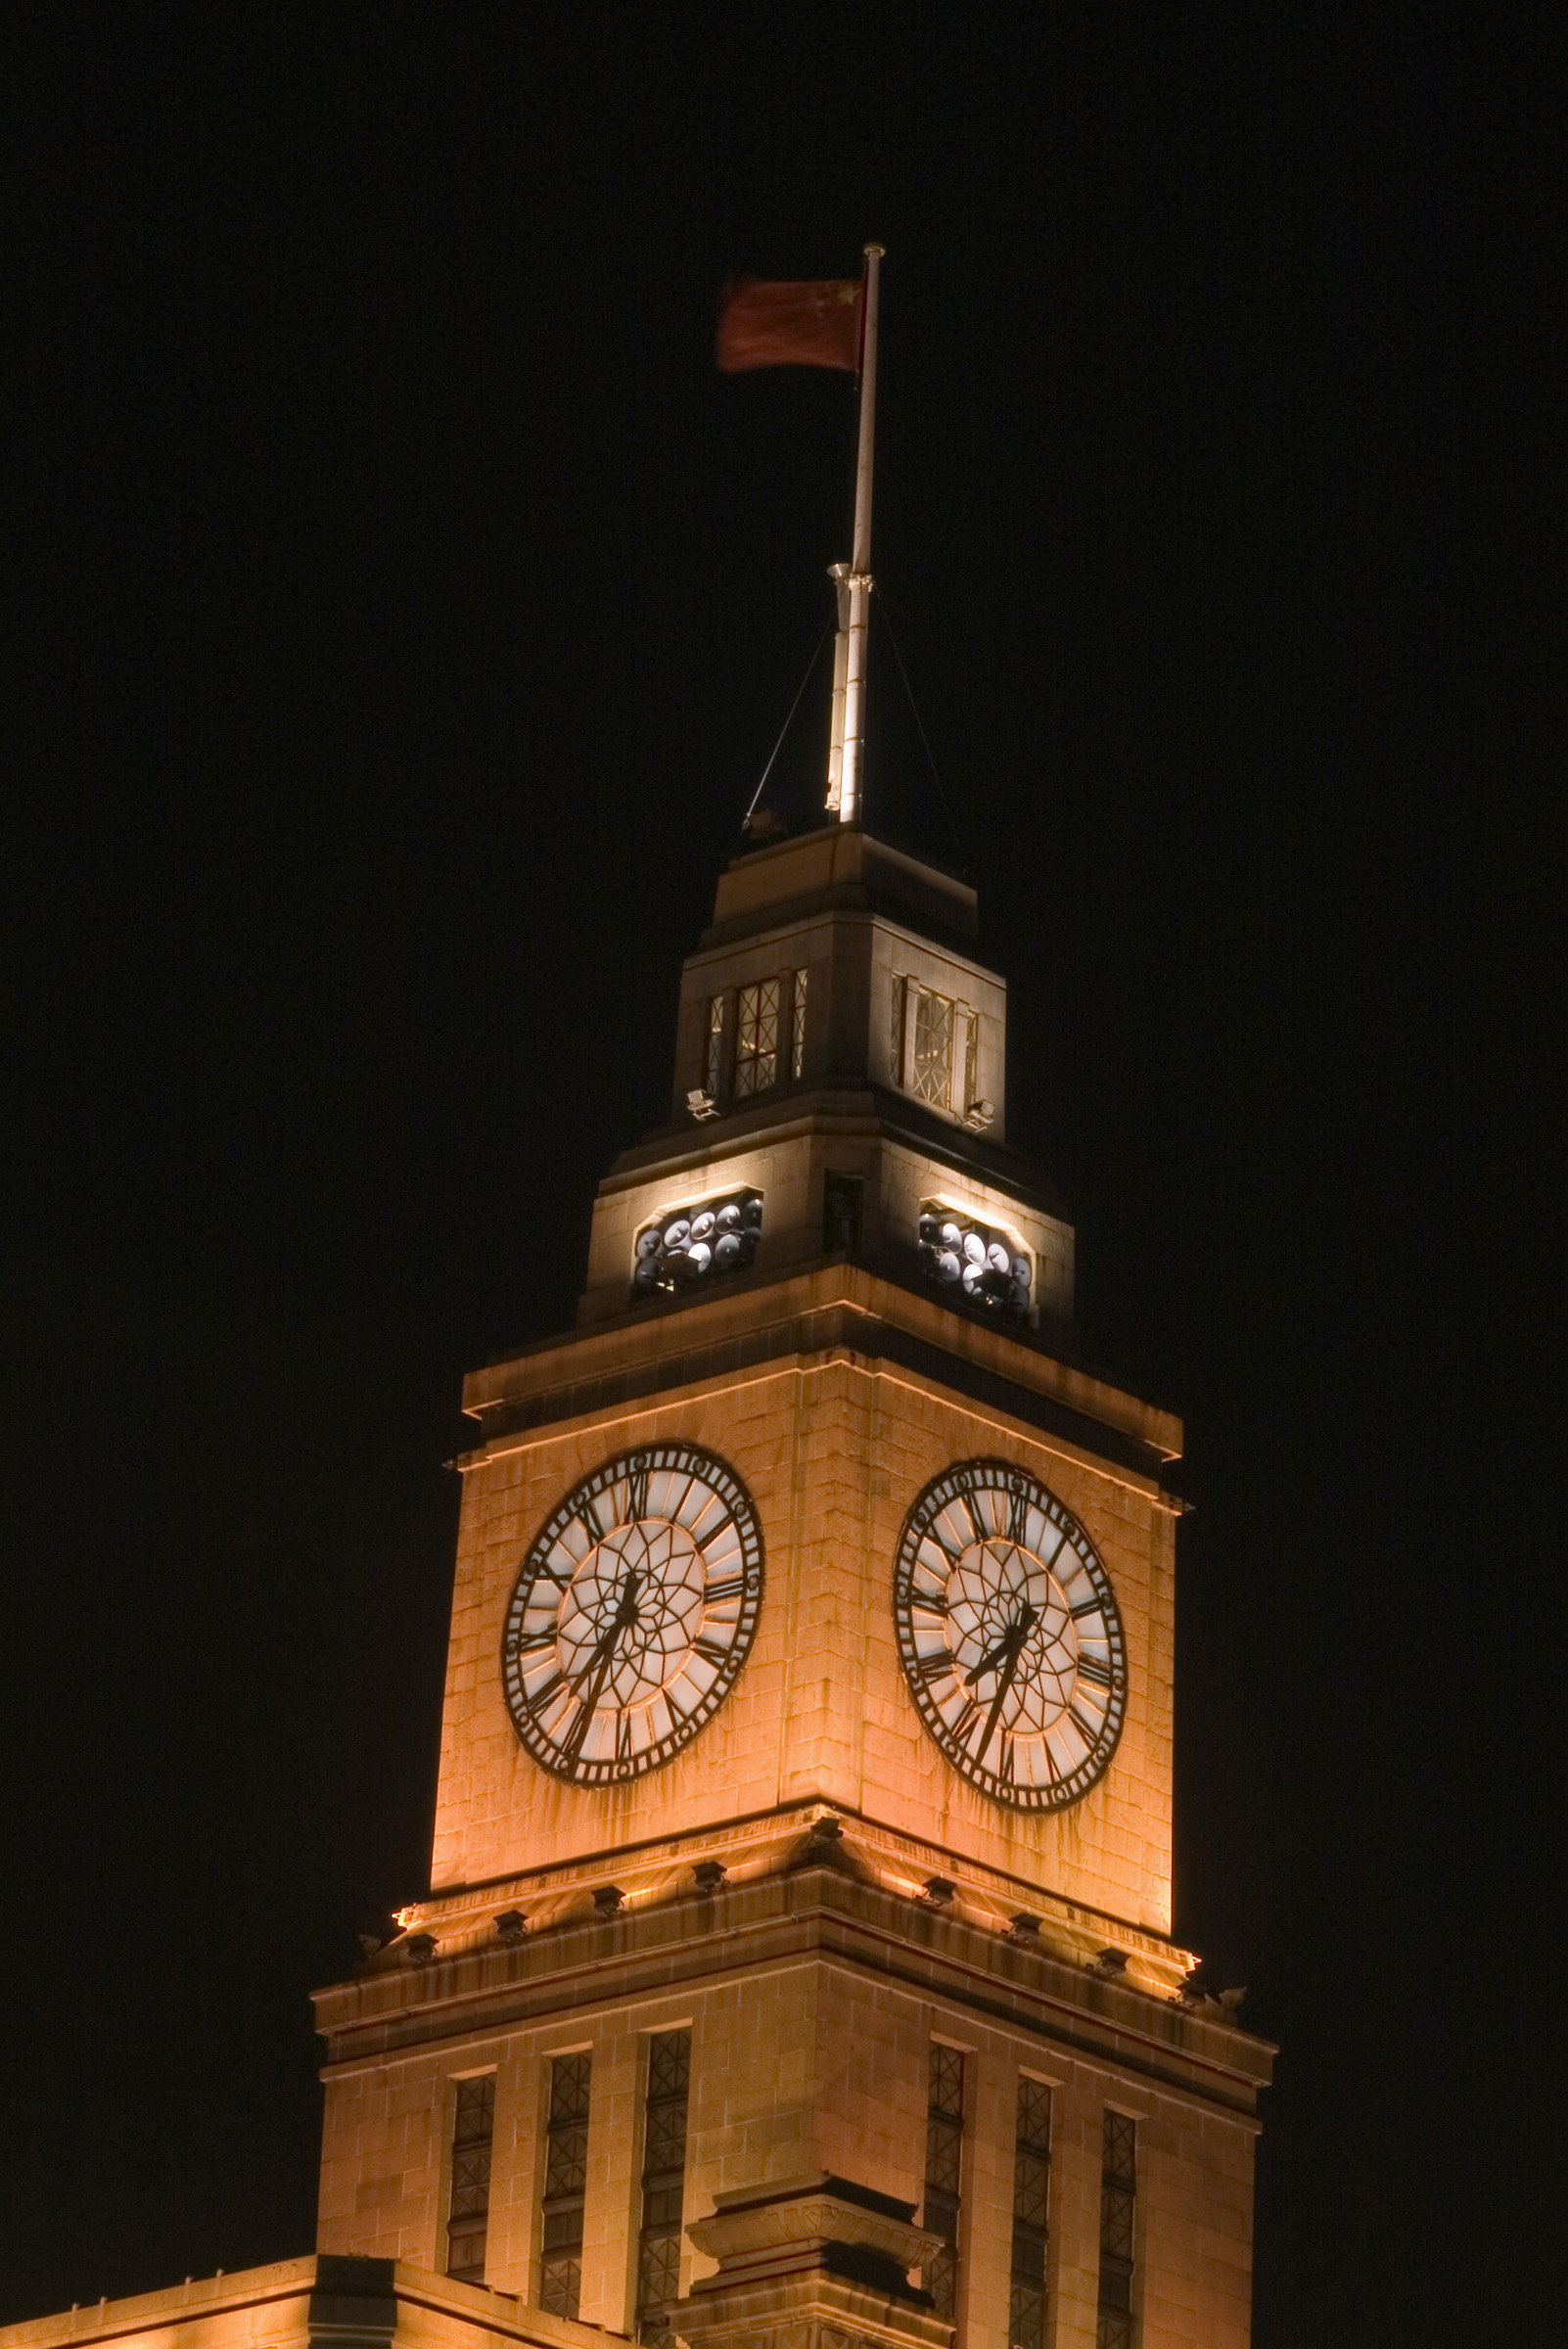 Famous Big Clock on Eight Storey Custom House Wall at the Bund, Shanghai China. Captured at Night Time.